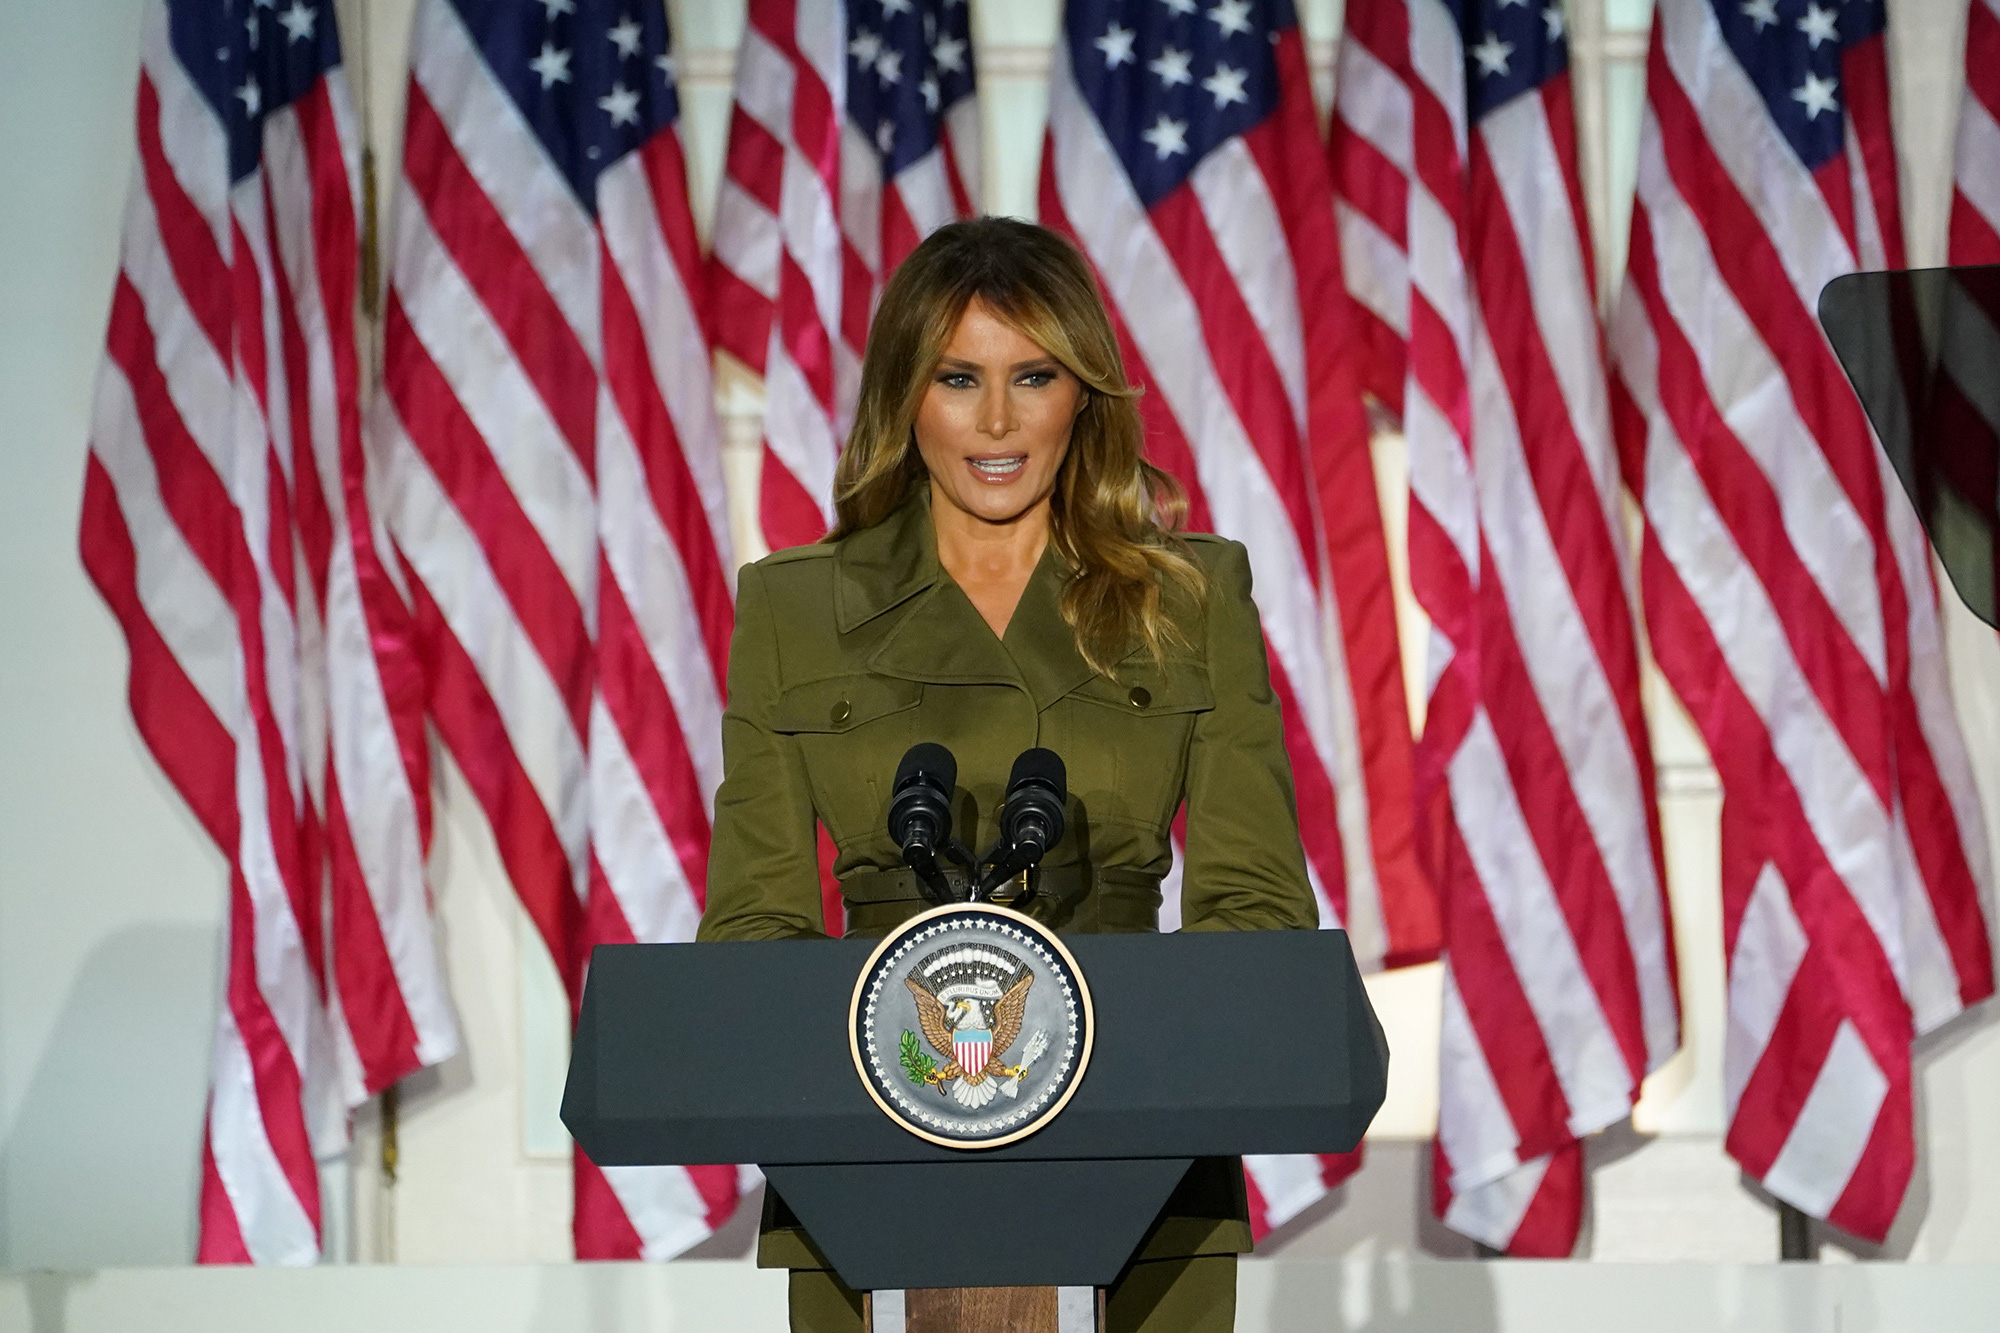 Rnc 2020 Melania Trump Offers Assurance Amid Pandemic From Rose Garden